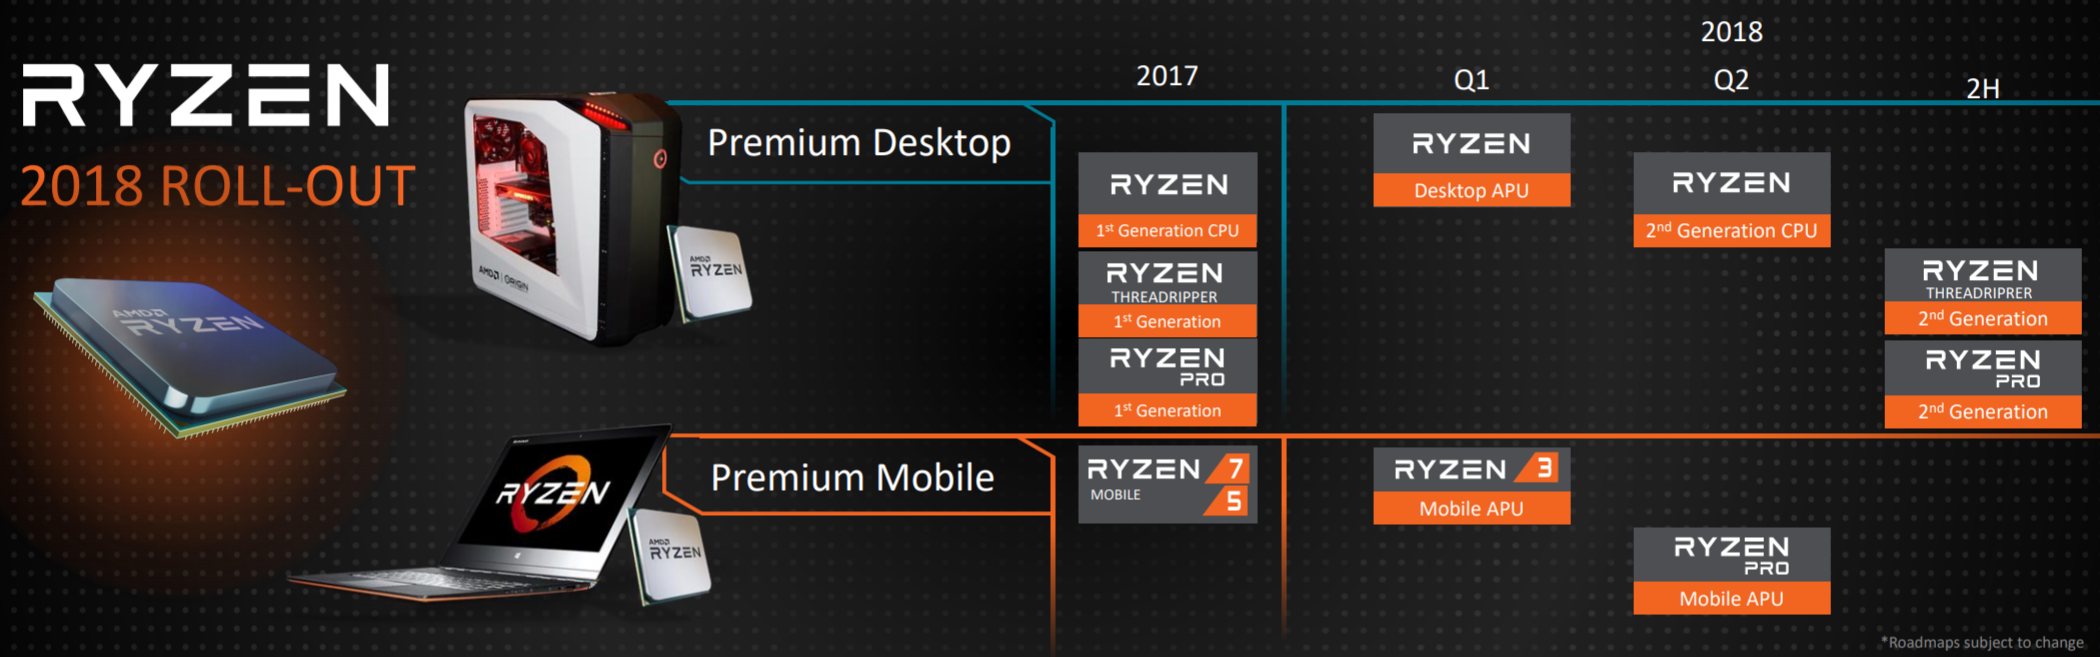 Amd Shows Off 2018 Ryzen Processor Roadmap And Slashes Prices Legit Reviews